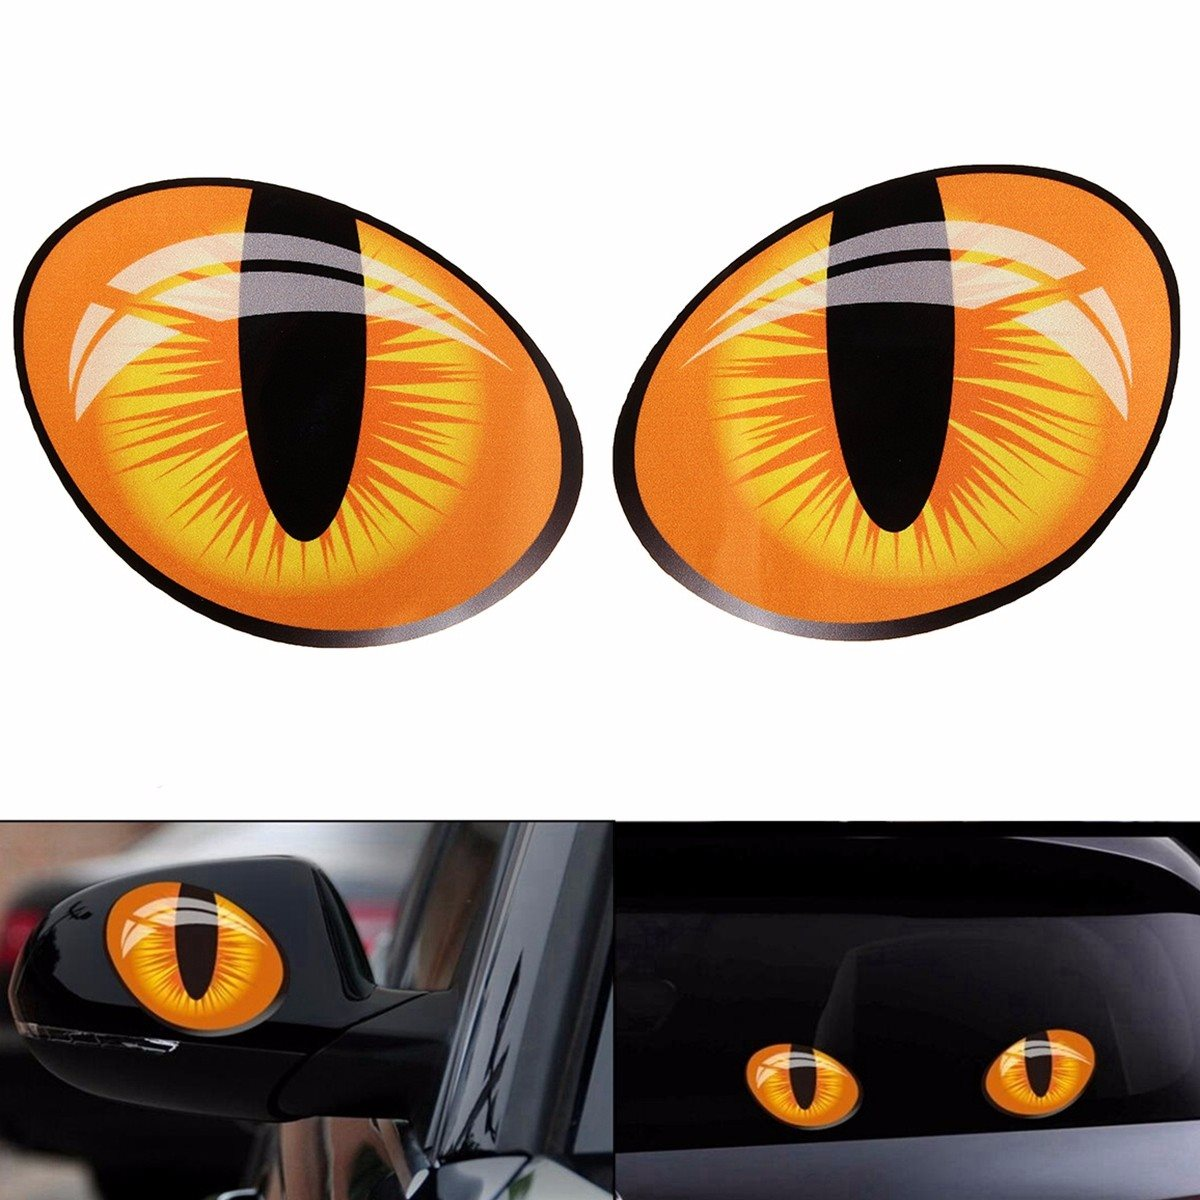 Pair 3D Funny Reflective Cat Eyes Car Stickers Truck Head Engine Rearview Mirror Window Cover Door Decal Graphics 10 x 8cm elegant cat mirror cat bovine anti theft door aw4620c 02 copper luxury carved cat